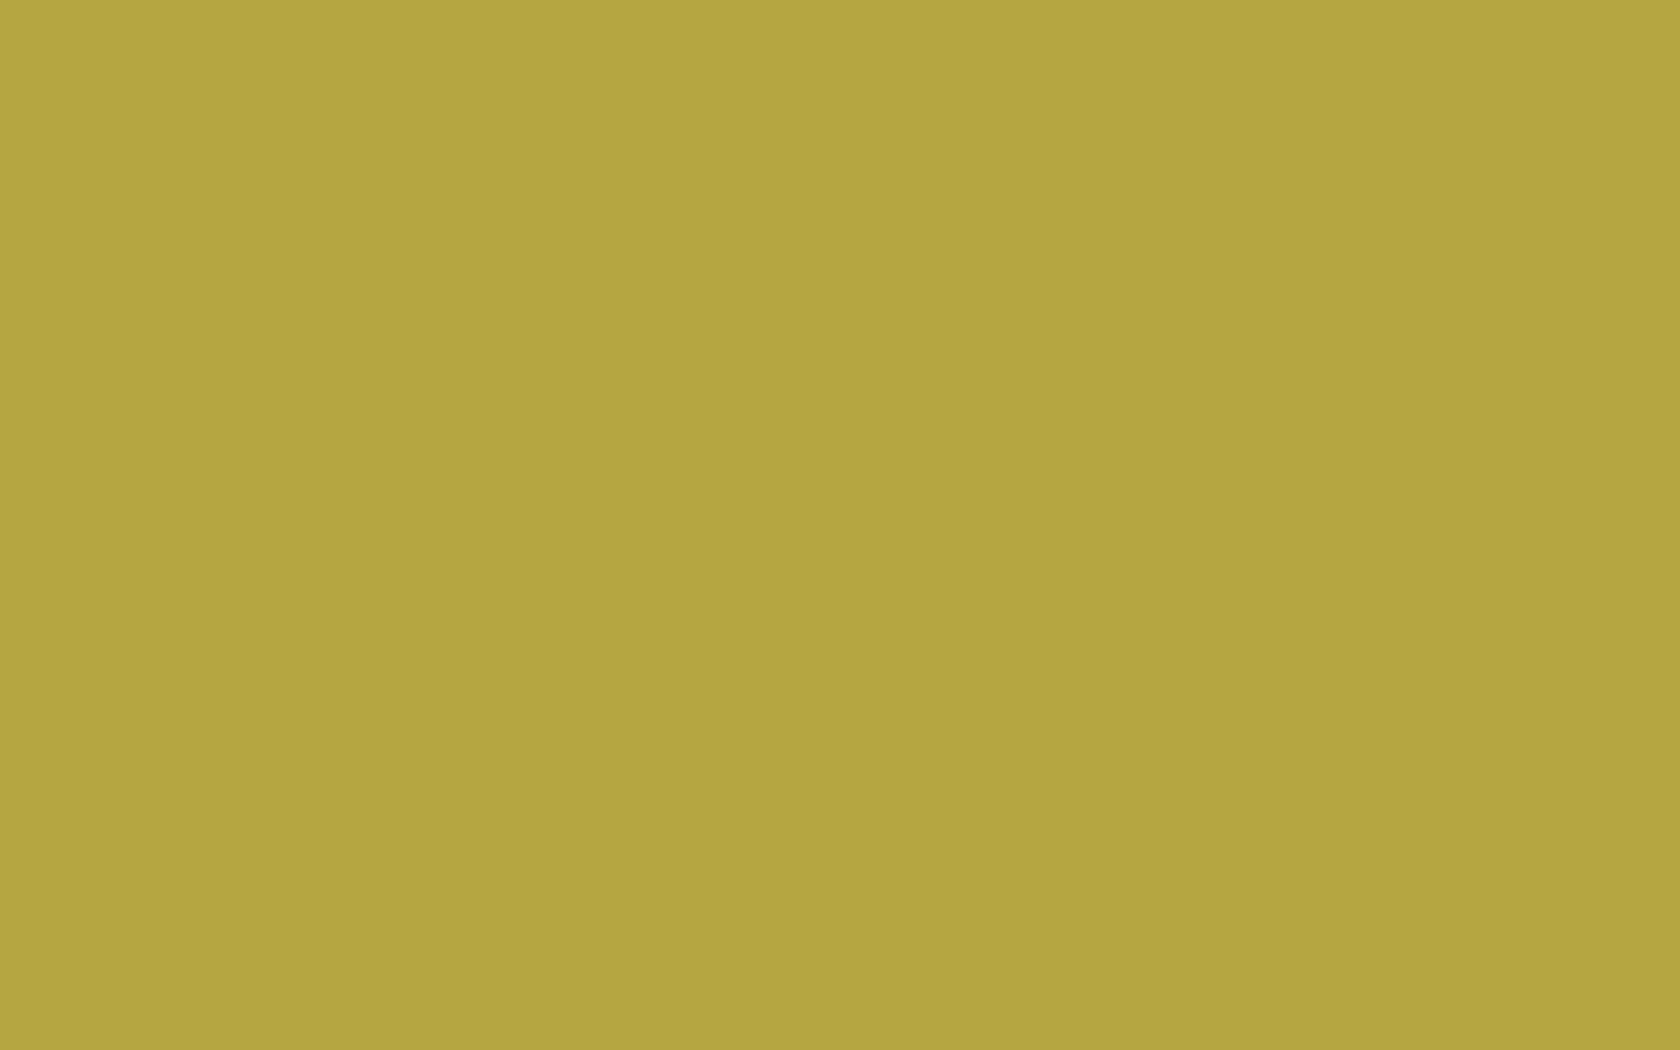 1680x1050 Brass Solid Color Background